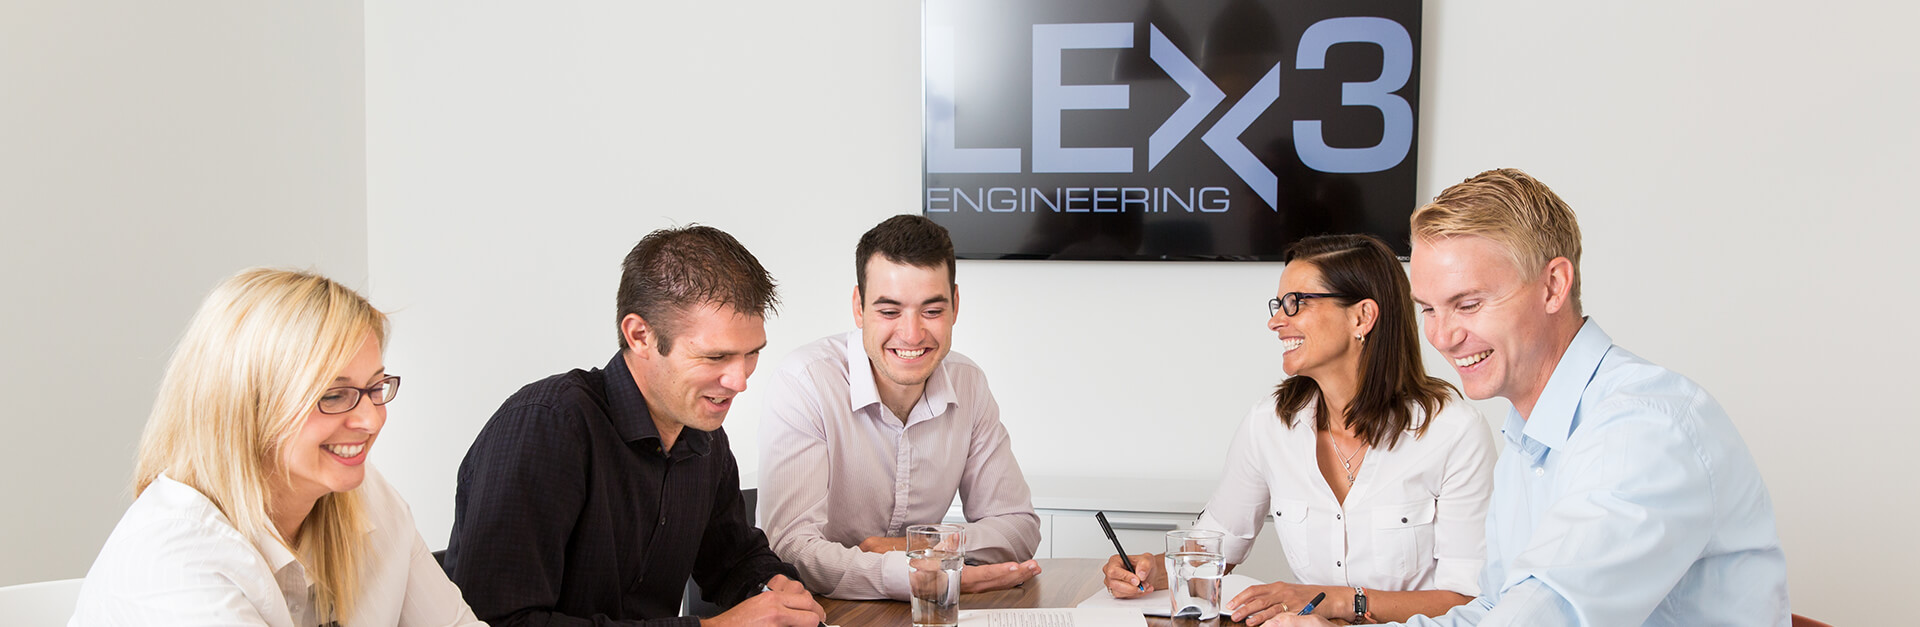 LEX3 Engineering